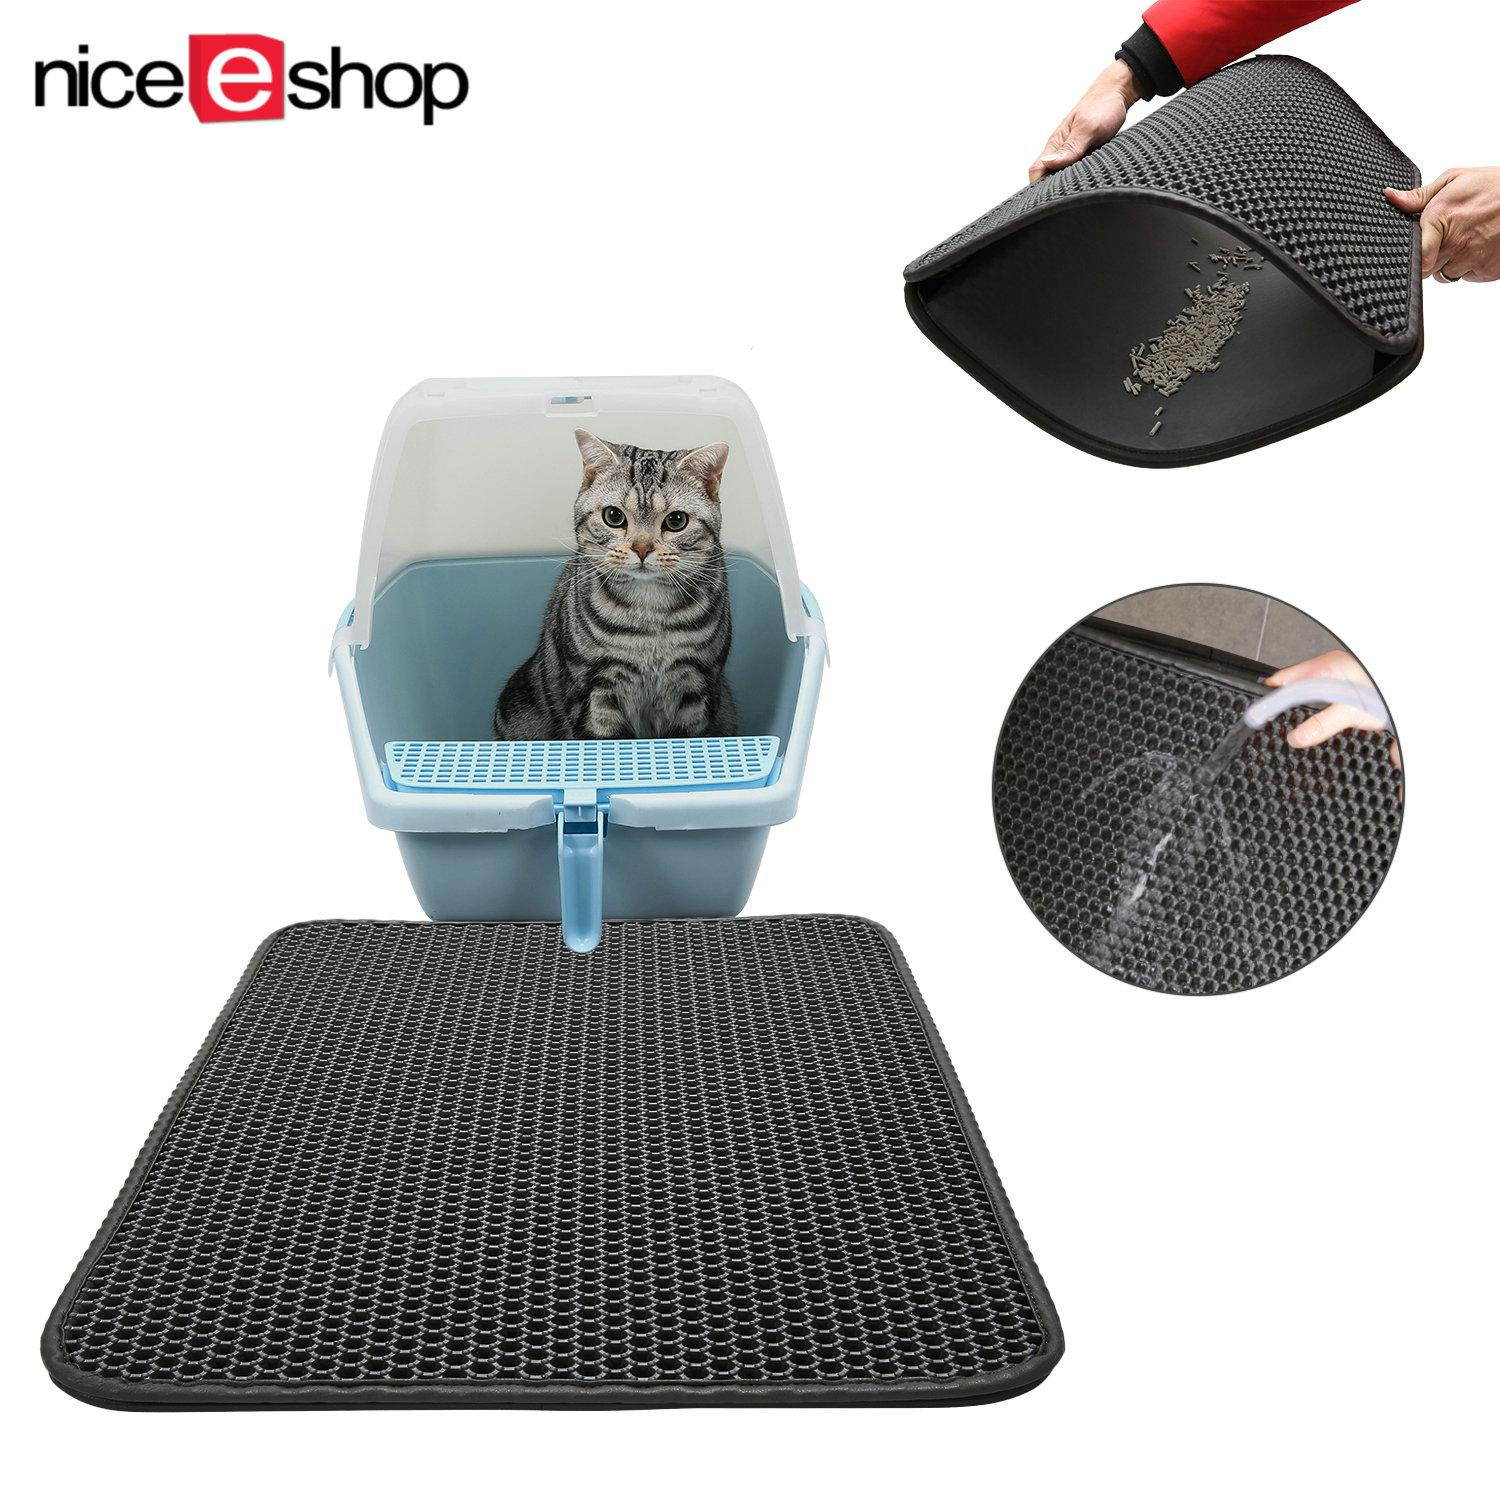 Niceeshop Water Proof Cat Litter Mat Double Layer Honeycomb Cat Feeding Mat Litter Trapping Size 40X50Cm Intl Deal